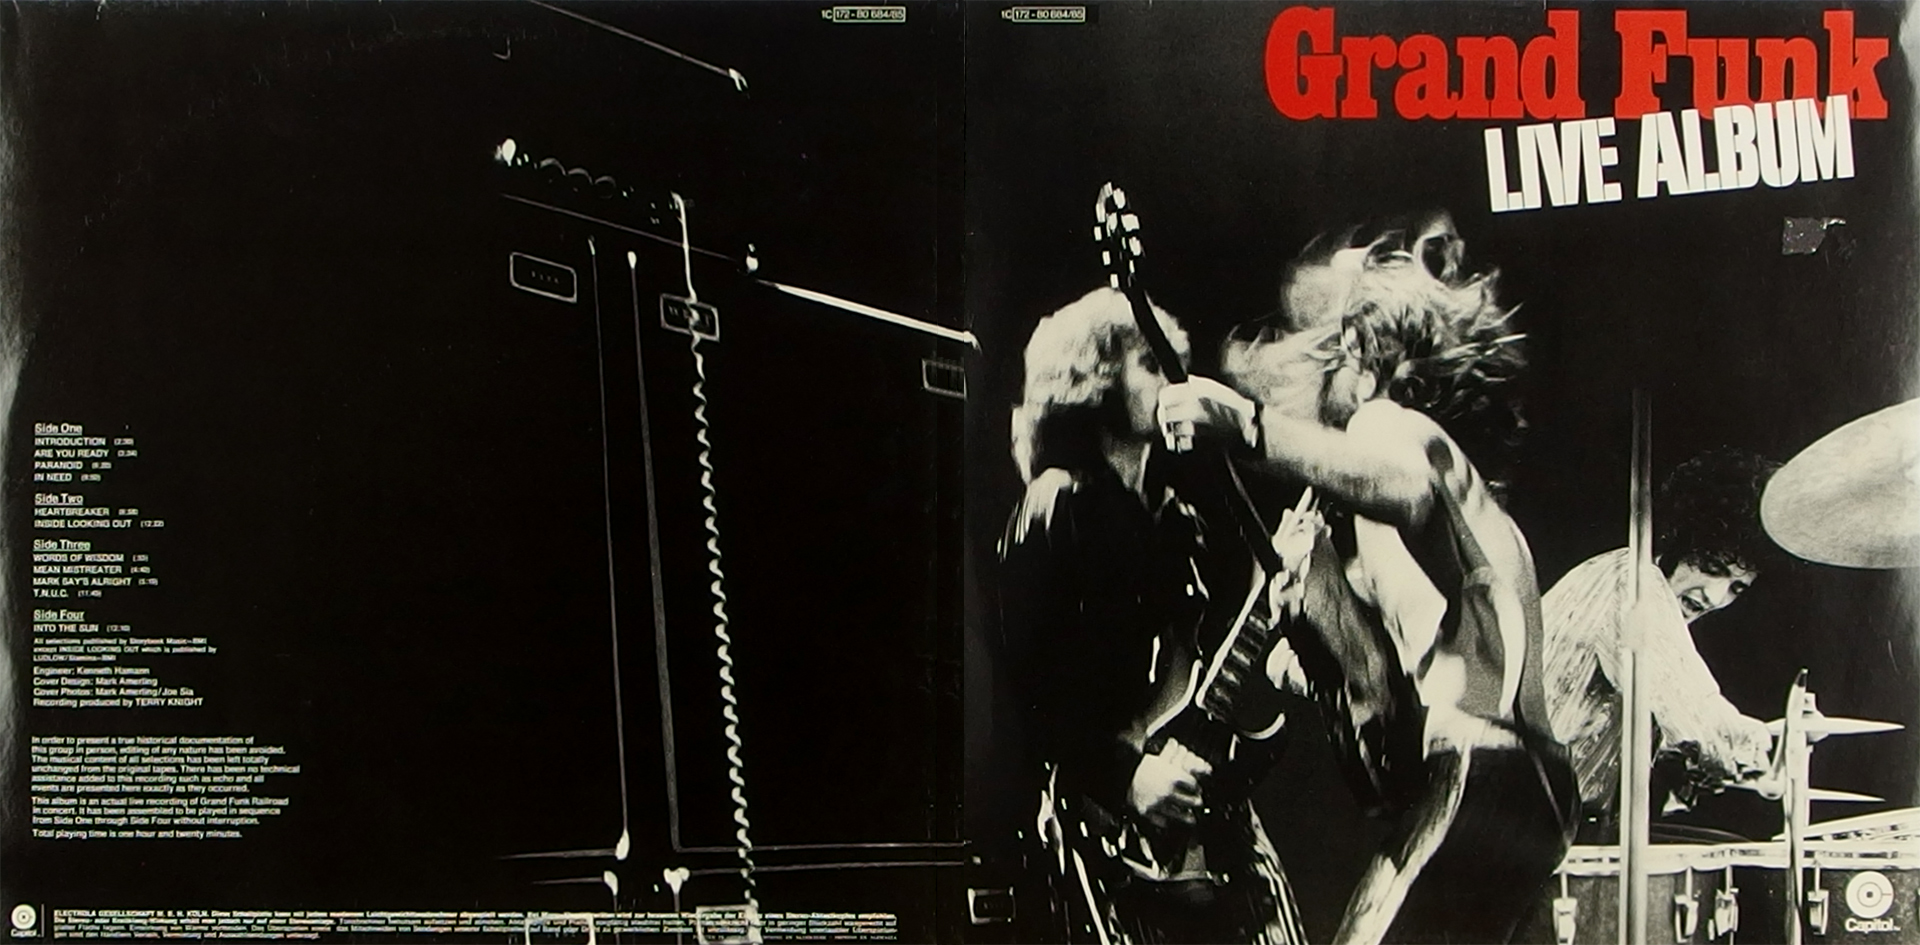 LP Cover: Grand Funk Railroad - Live Album - 1971